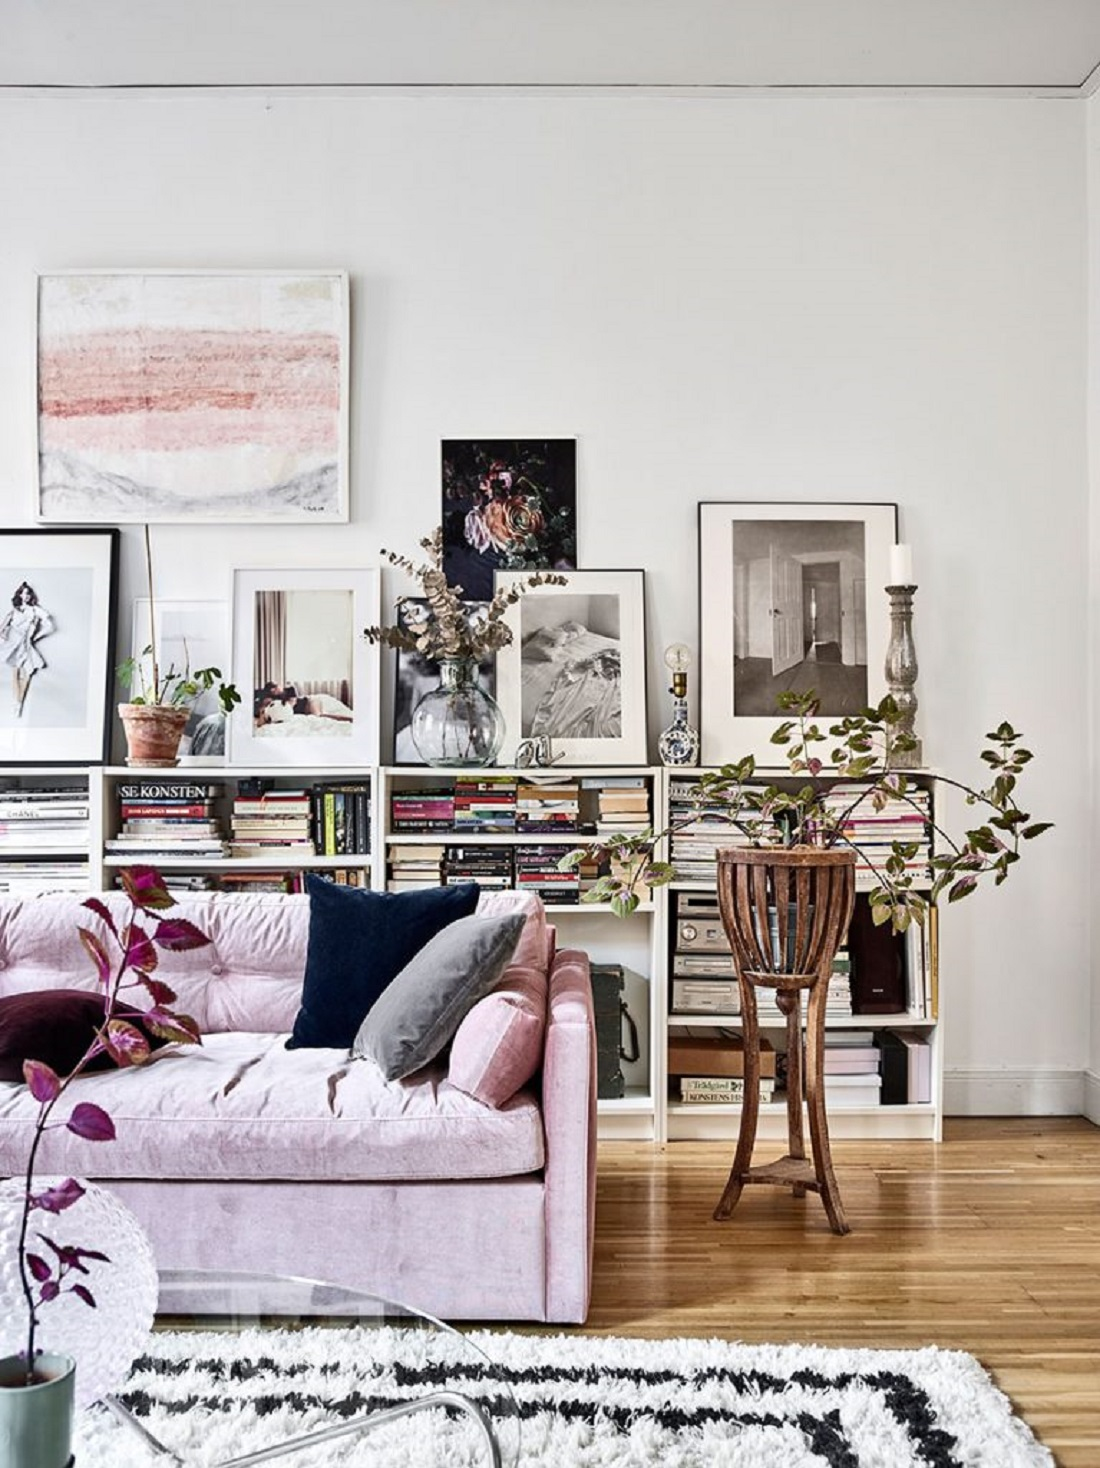 @projectfairytale: Pretty Scandinavian Interior